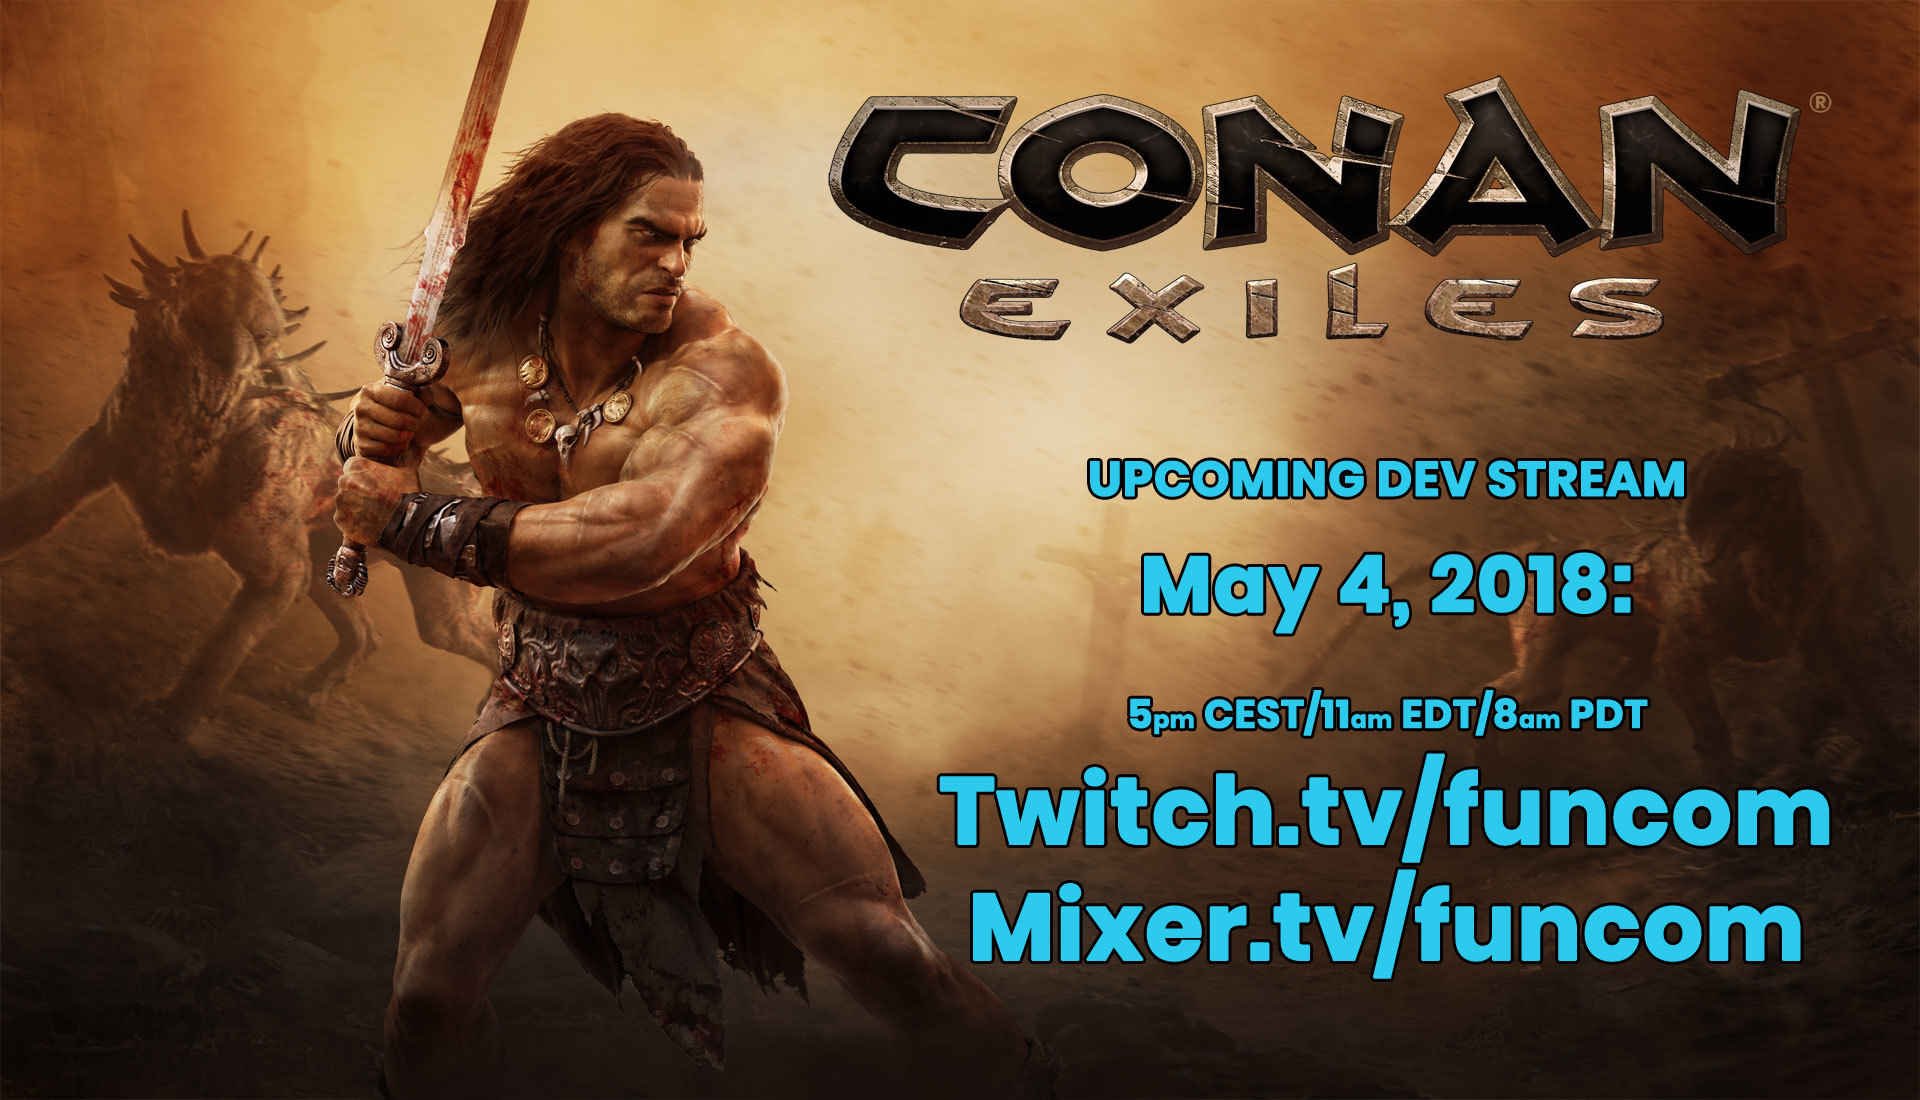 May 8, 2018 We're live! Conan Exiles is now launched! Conan Exiles